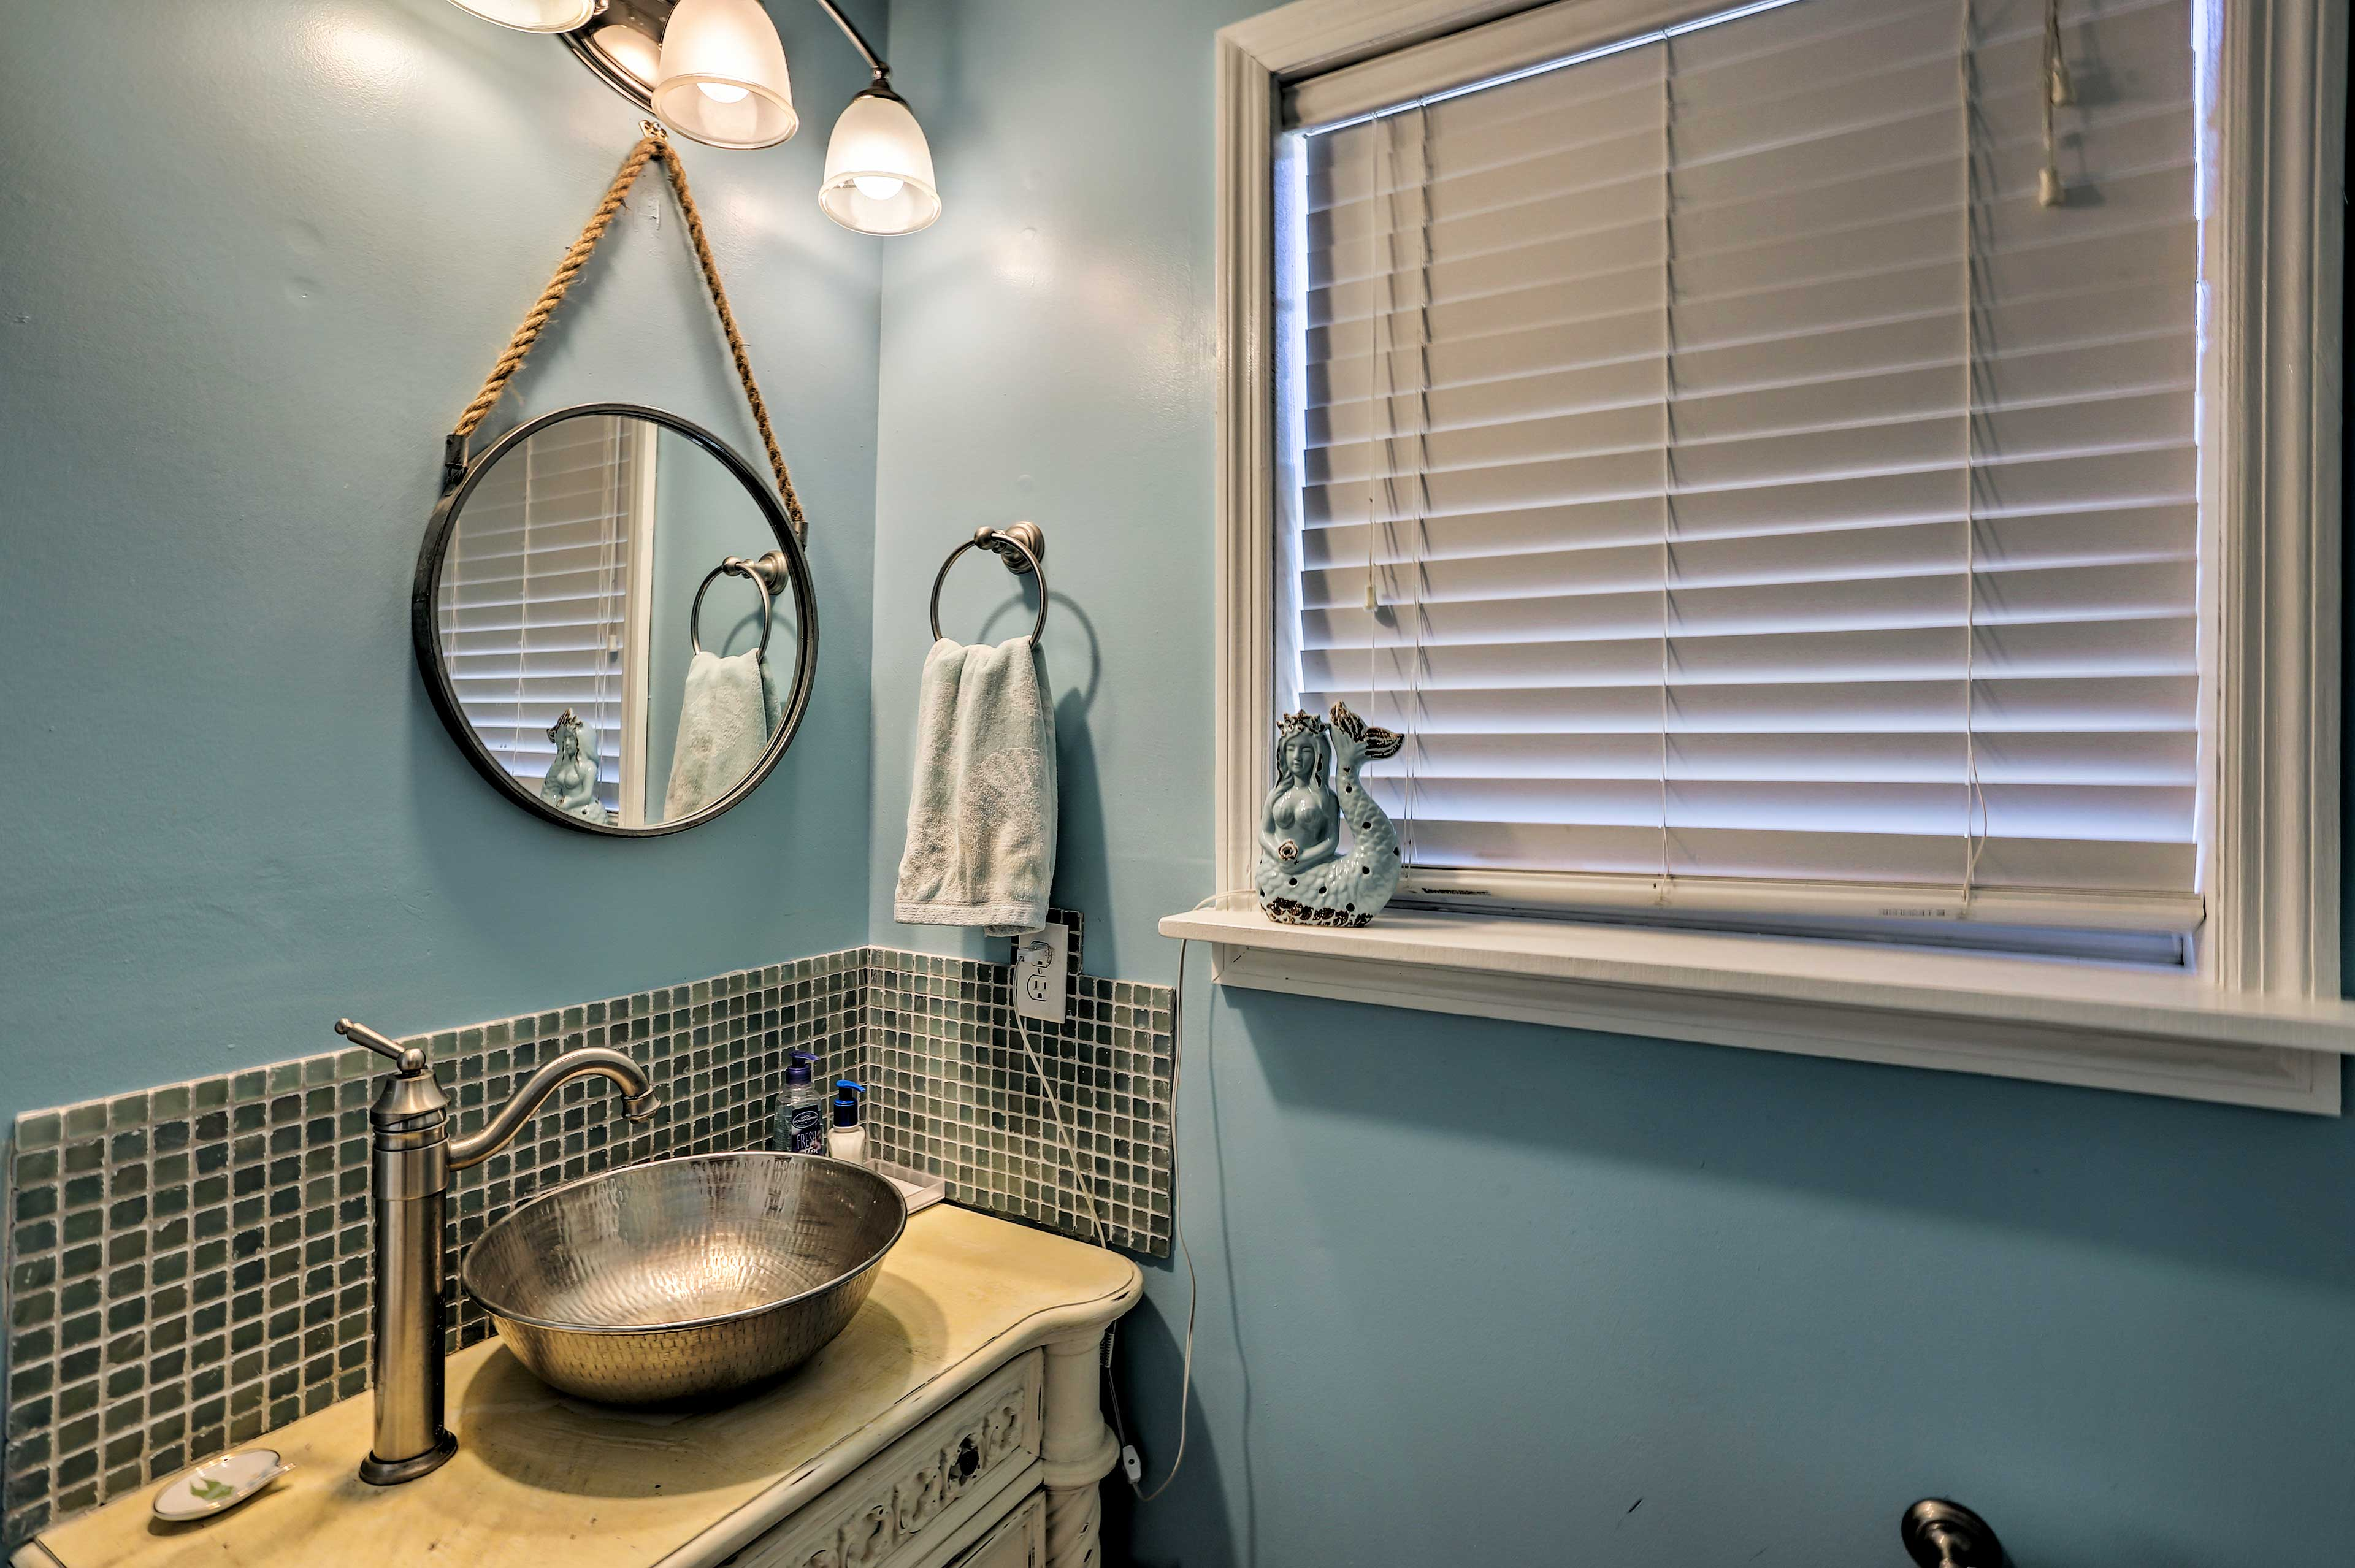 This chic bathroom features a vessel sink and nautical decor.